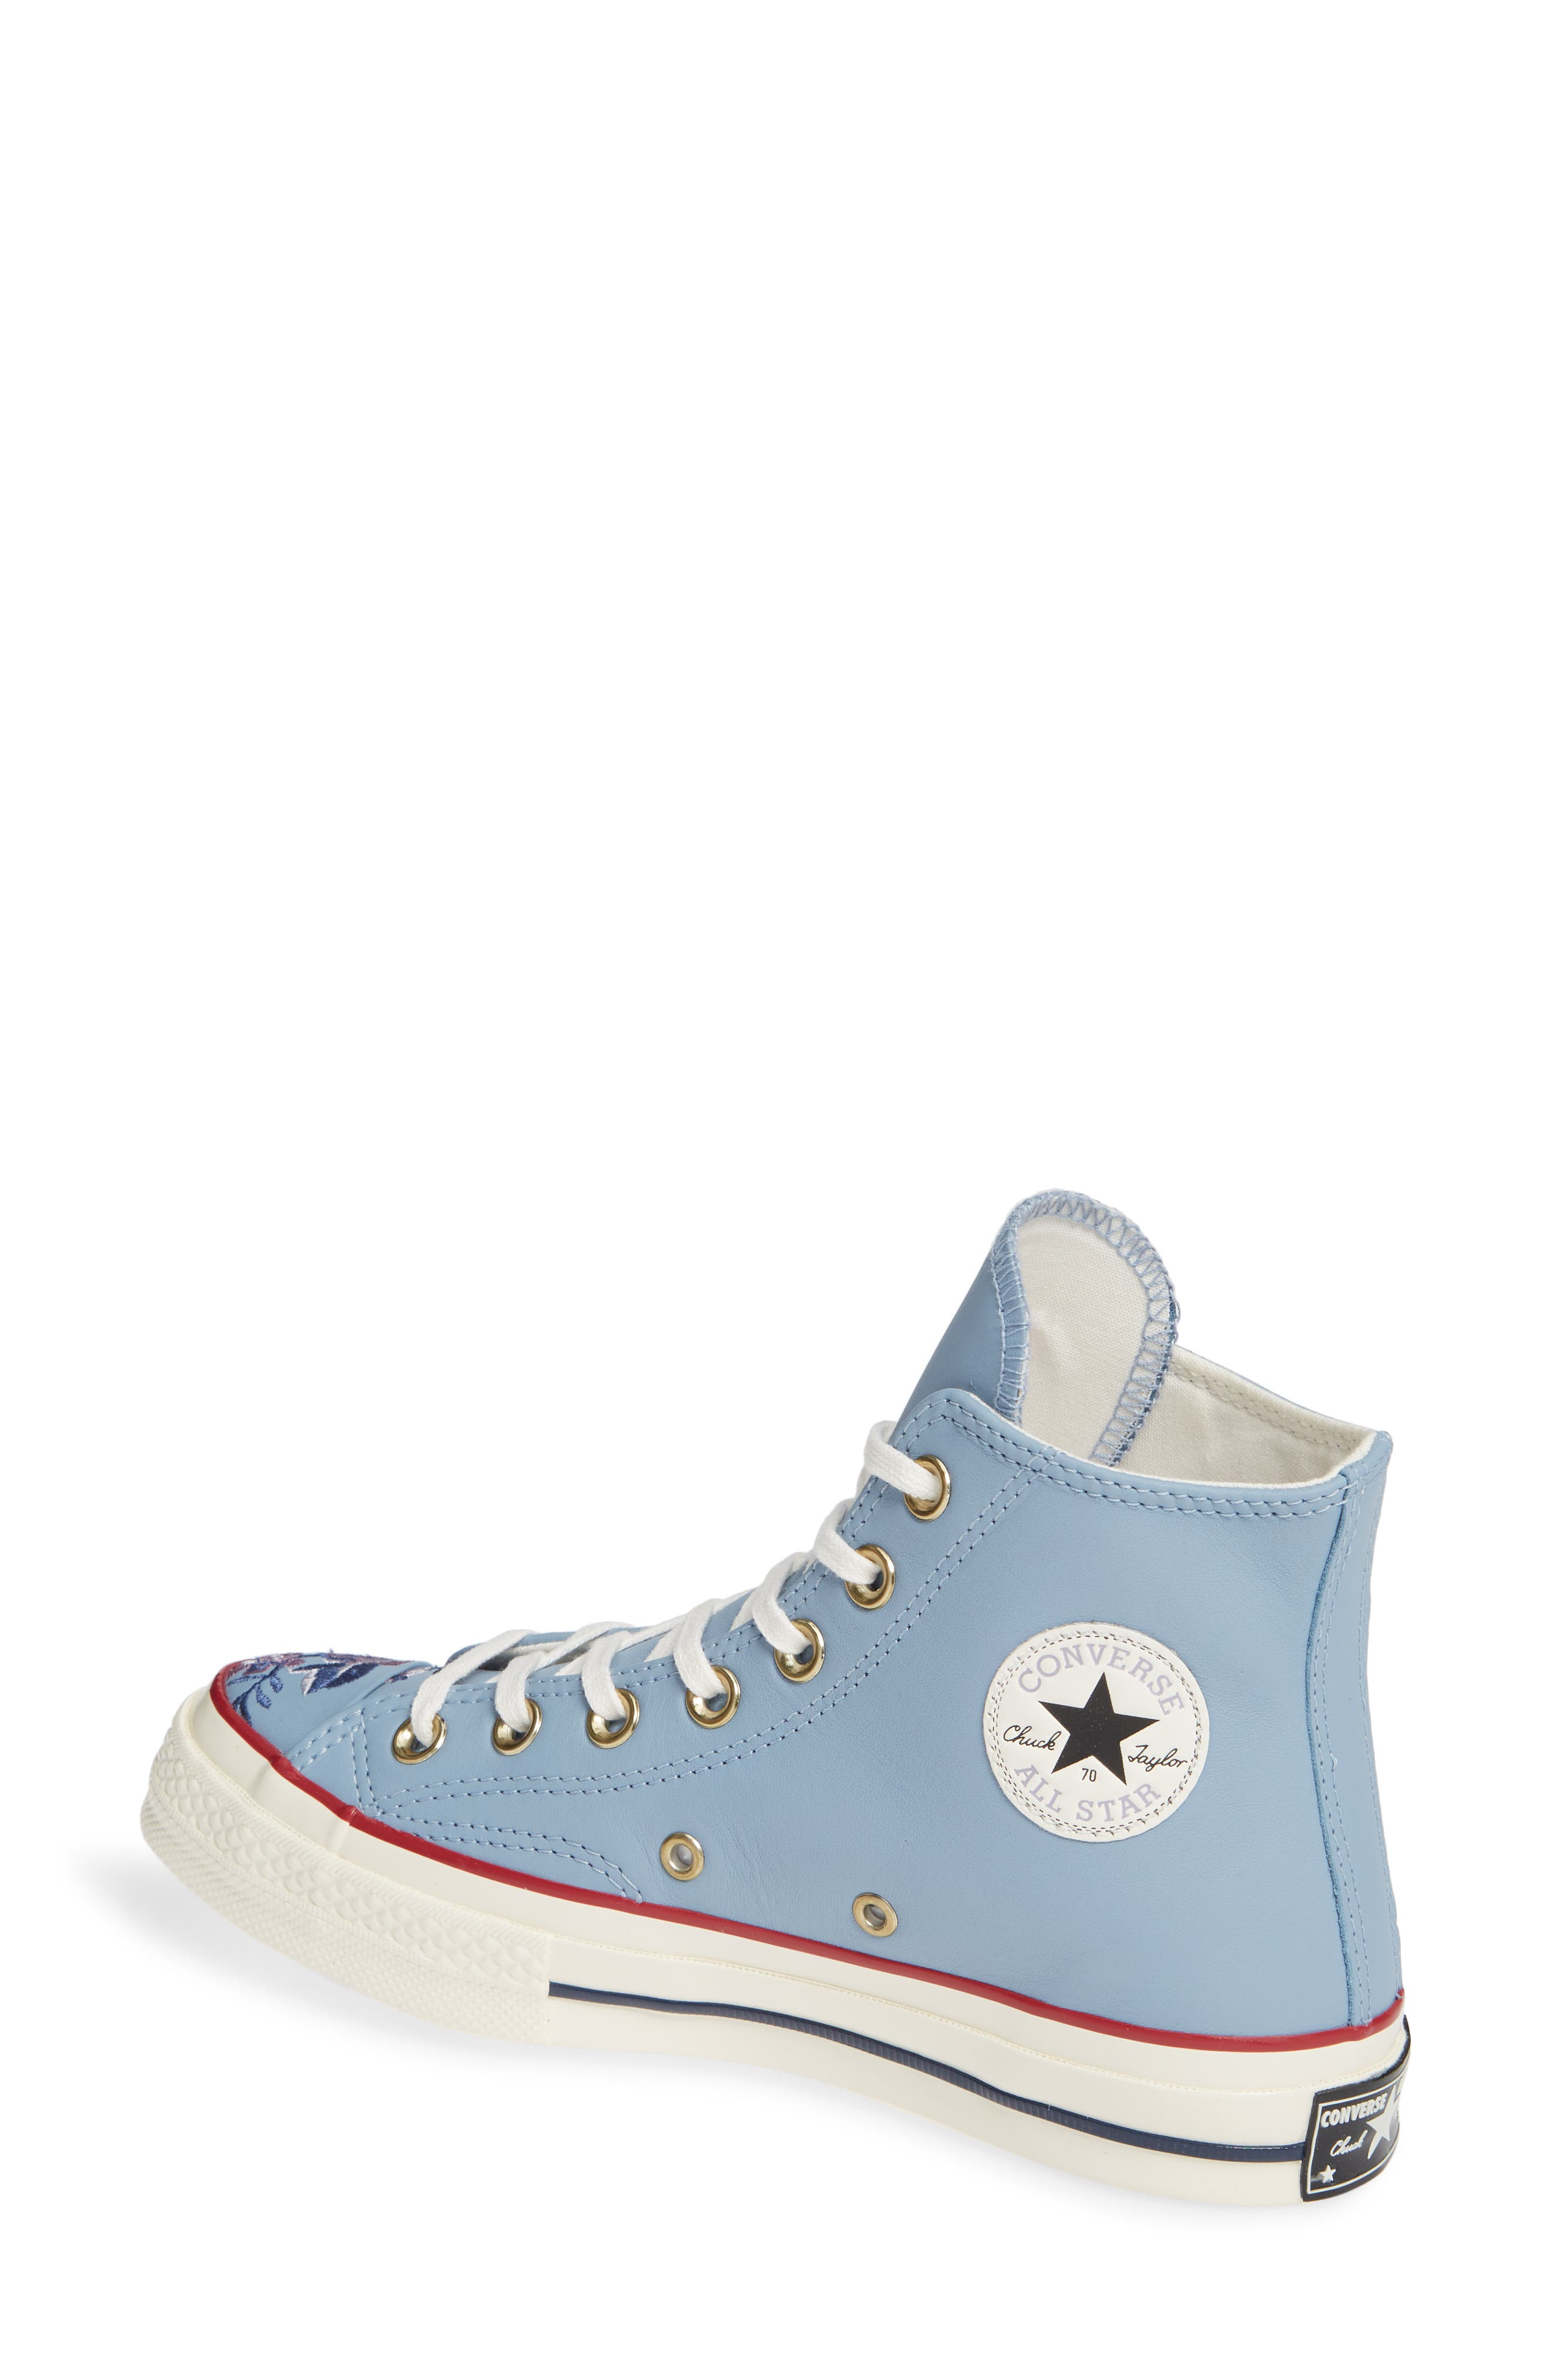 Chuck Taylor<sup>®</sup> All Star<sup>®</sup> Parkway Floral 70 High Top Sneaker,                             Alternate thumbnail 2, color,                             WASHED DENIM LEATHER